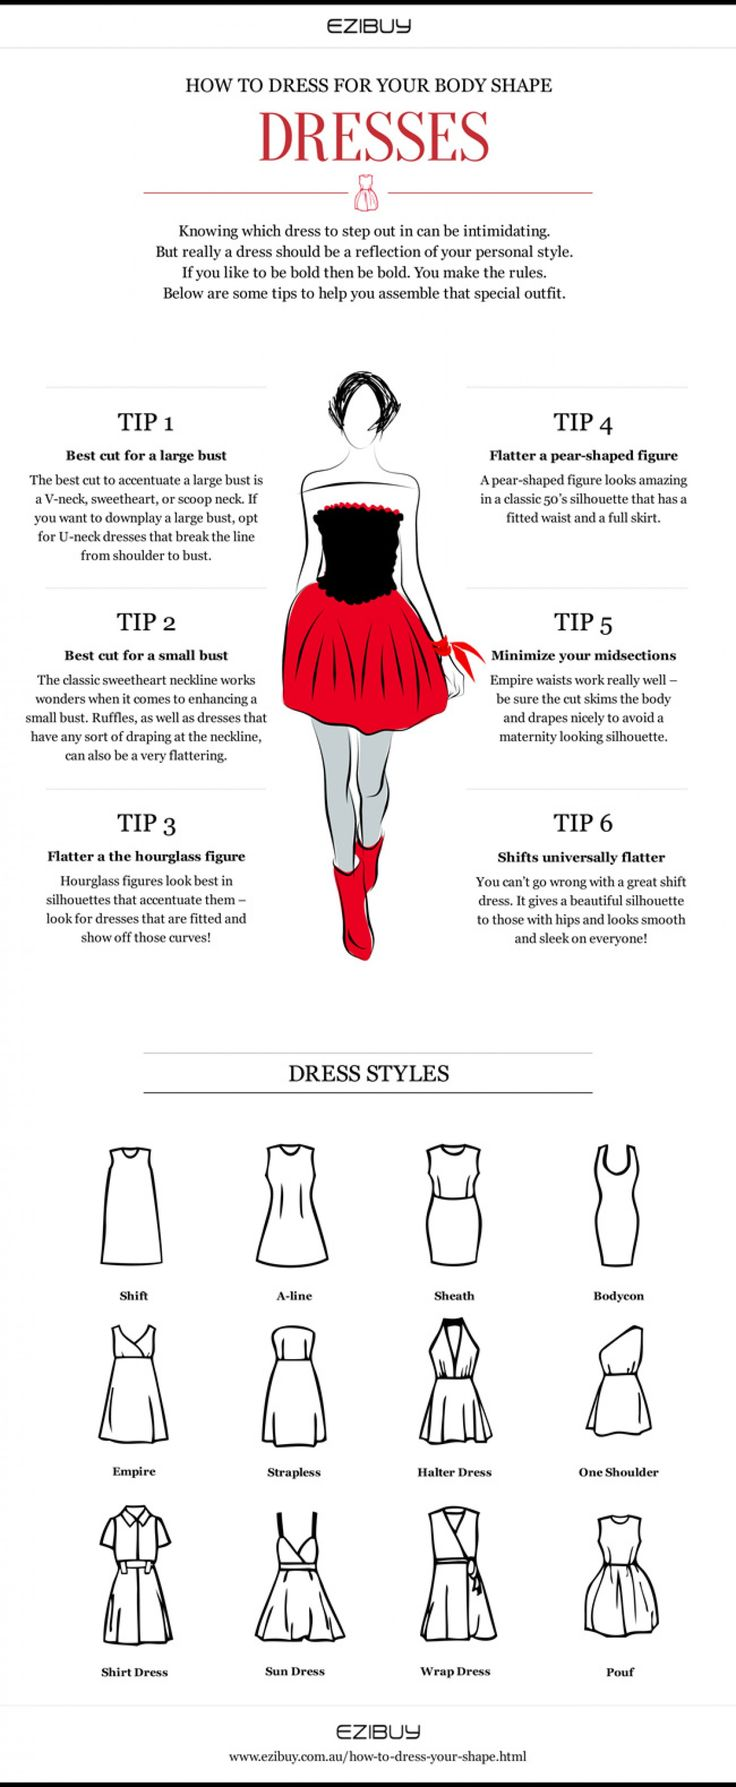 Life As We Know It Muslimah Clothing Fashion Tips: 6 Tips On How To Dress For Your Body Shape Infographic